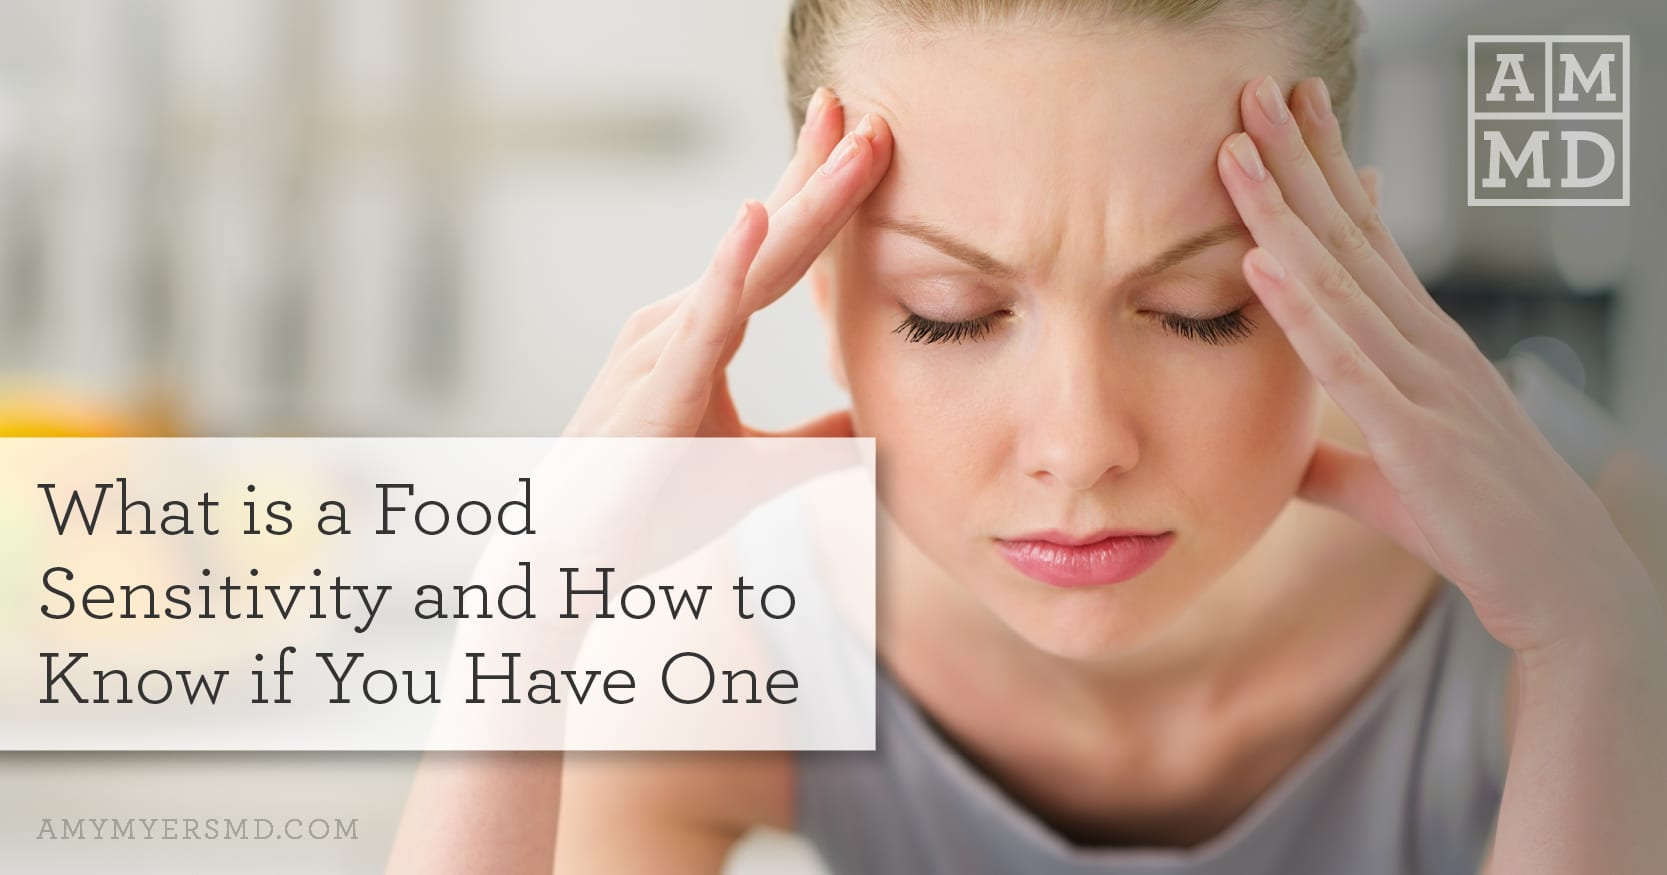 What is a Food Sensitivity - Woman with a headache - Featured Image - Amy Myers MD